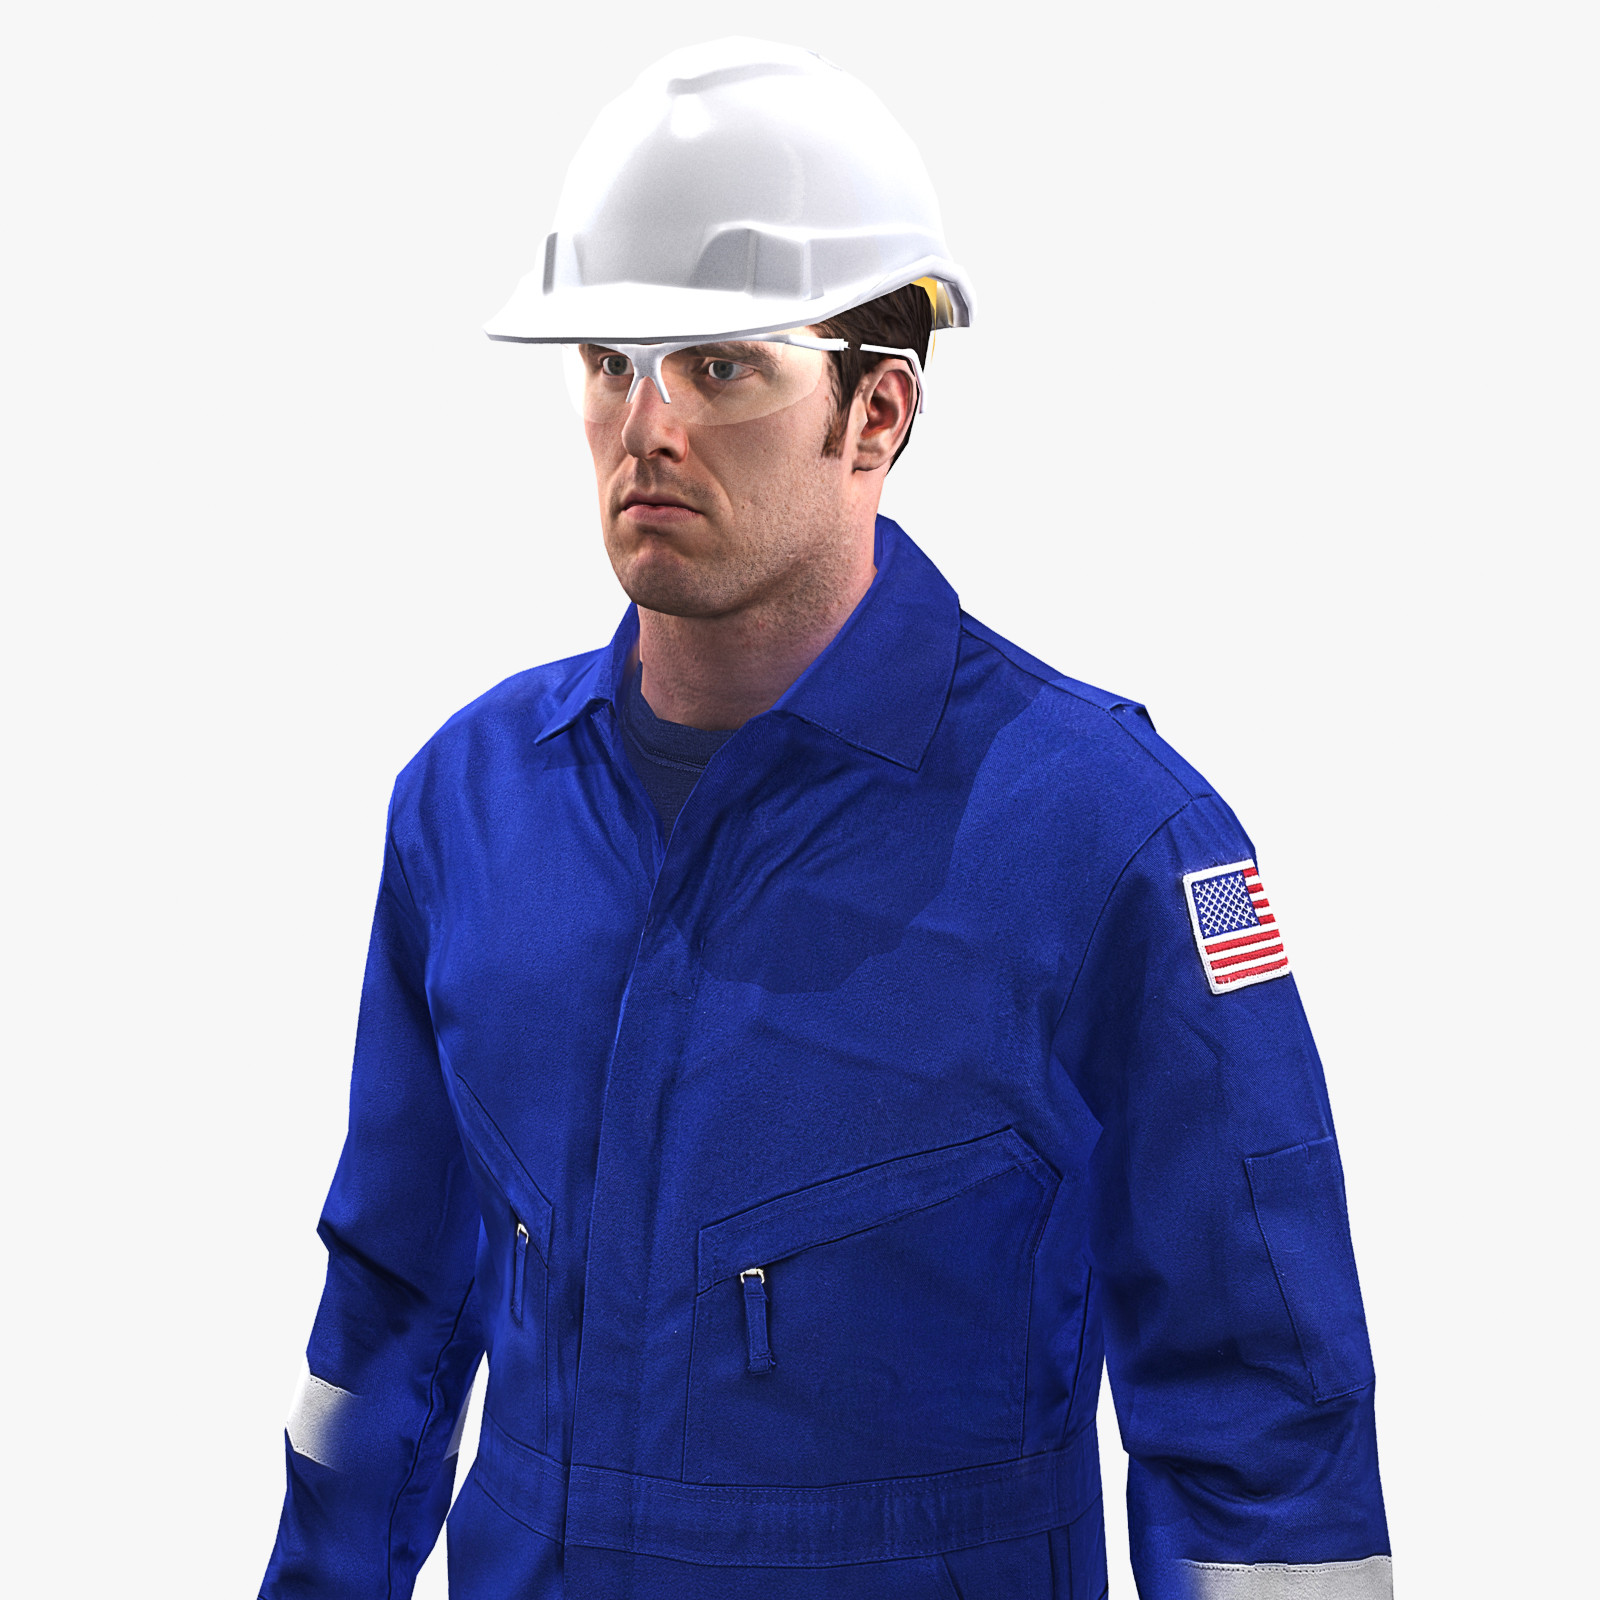 3D_Mining_Safety_Coveralls_Character_01.jpg